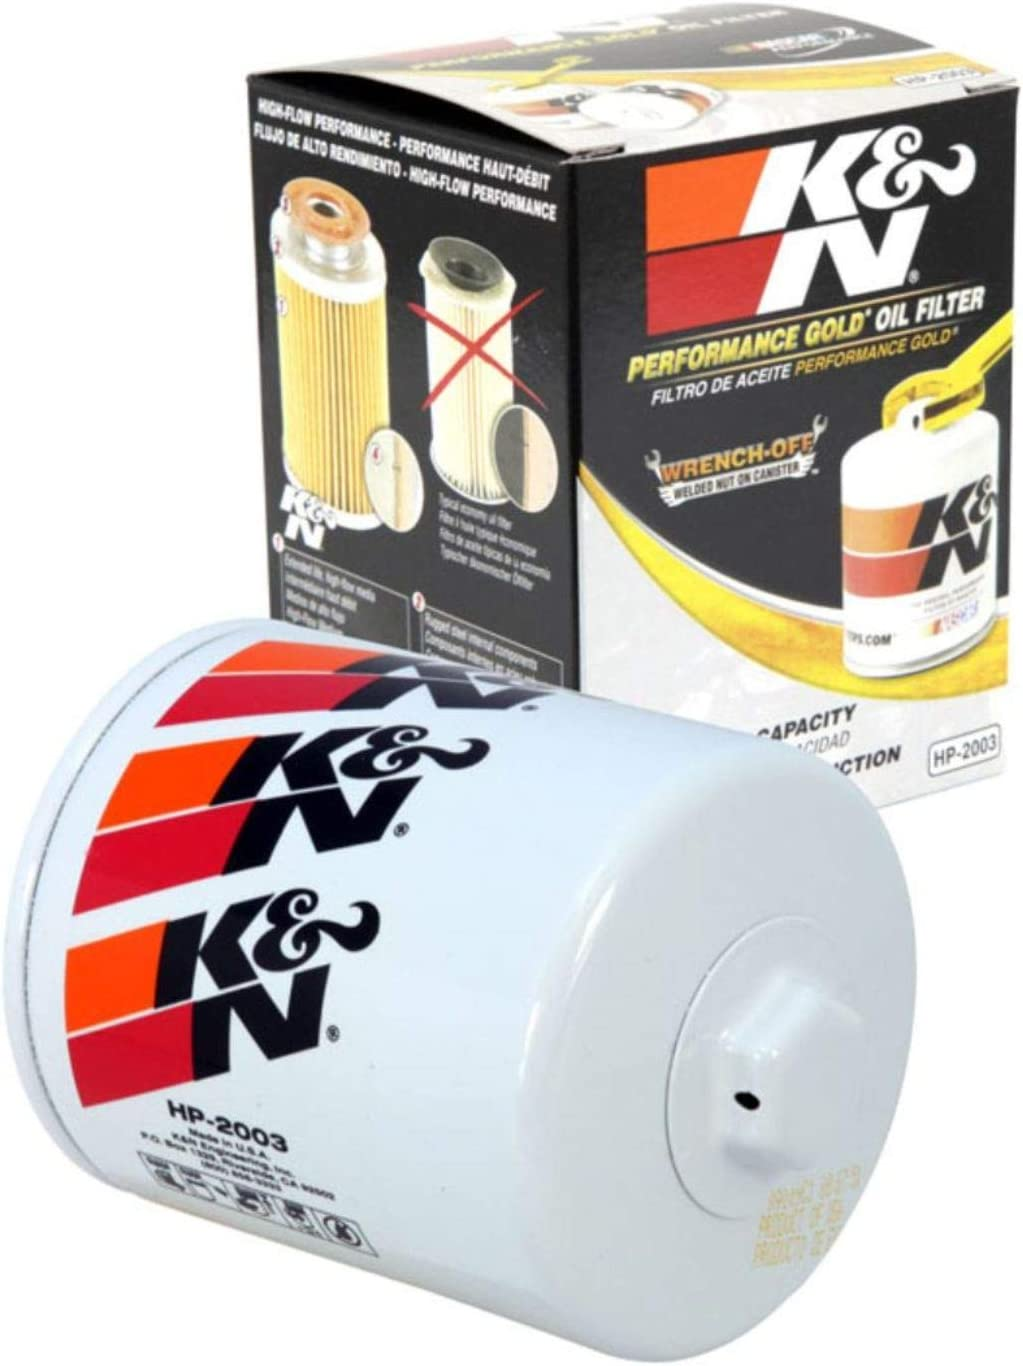 K&N Premium Oil Filter: Designed to Protect your Engine: Fits Select JEEP/AMC/BUICK/PONTIAC Vehicle Models (See Product Description for Full List of Compatible Vehicles), HP-2003